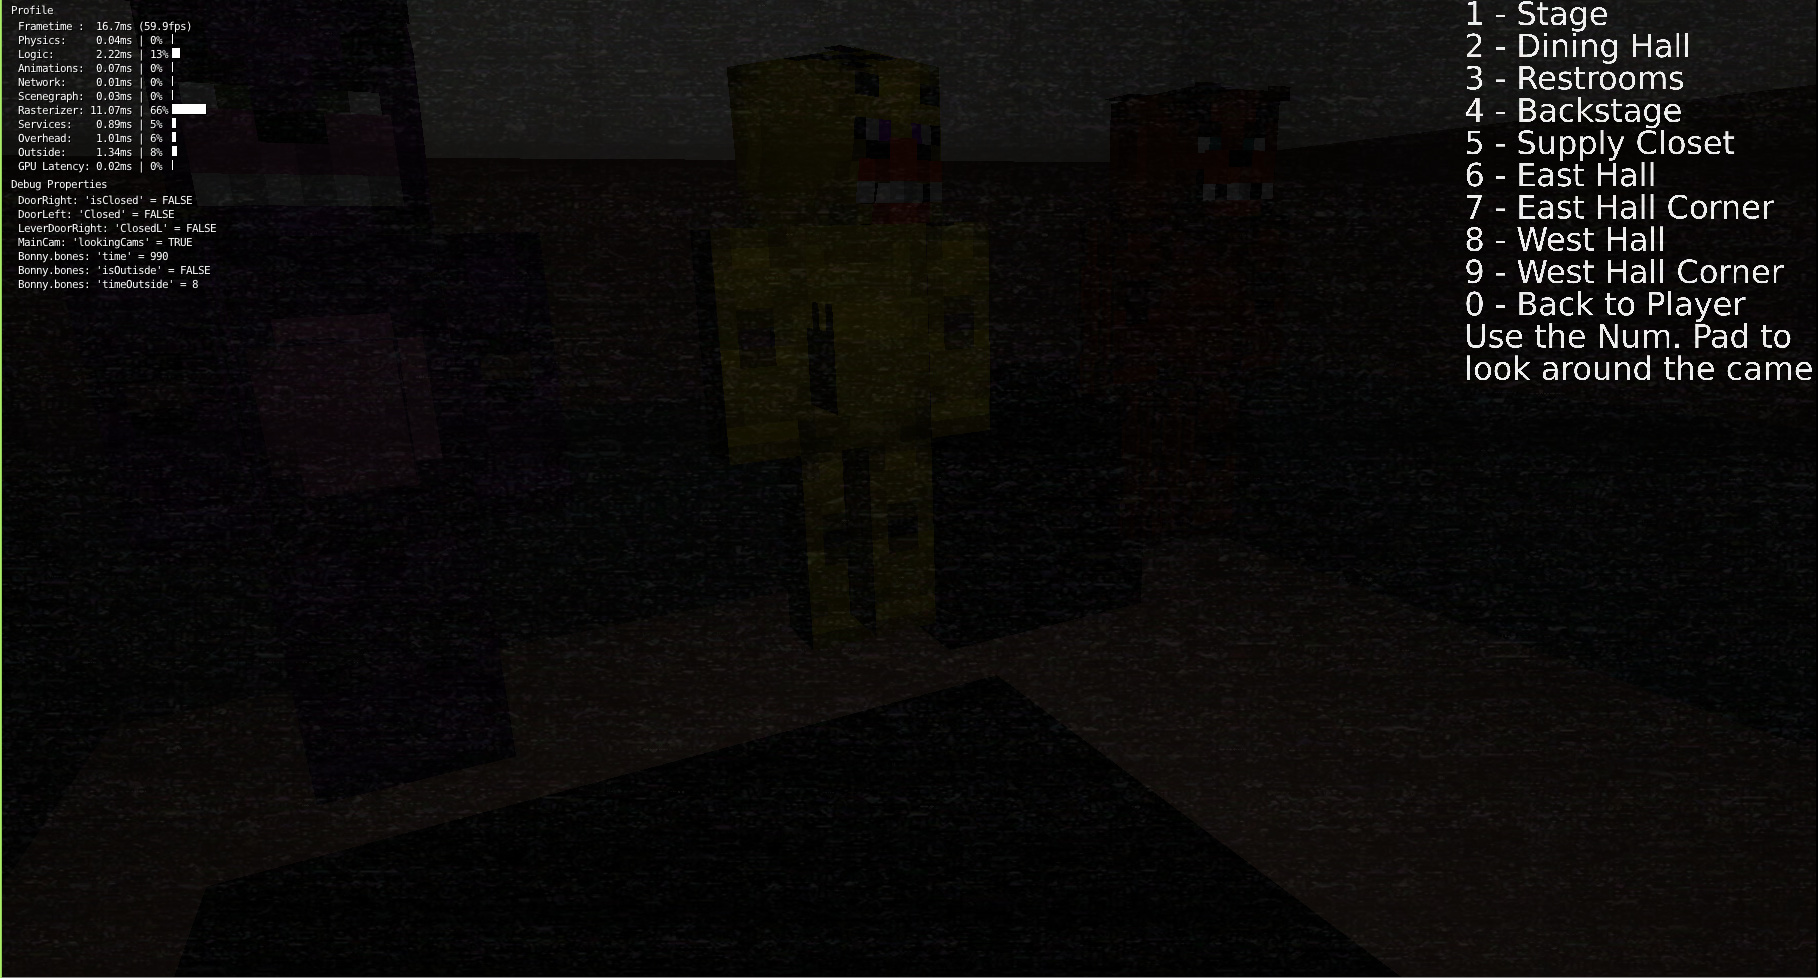 Minecraft Five Nights at Freddy's Recreated in Blender